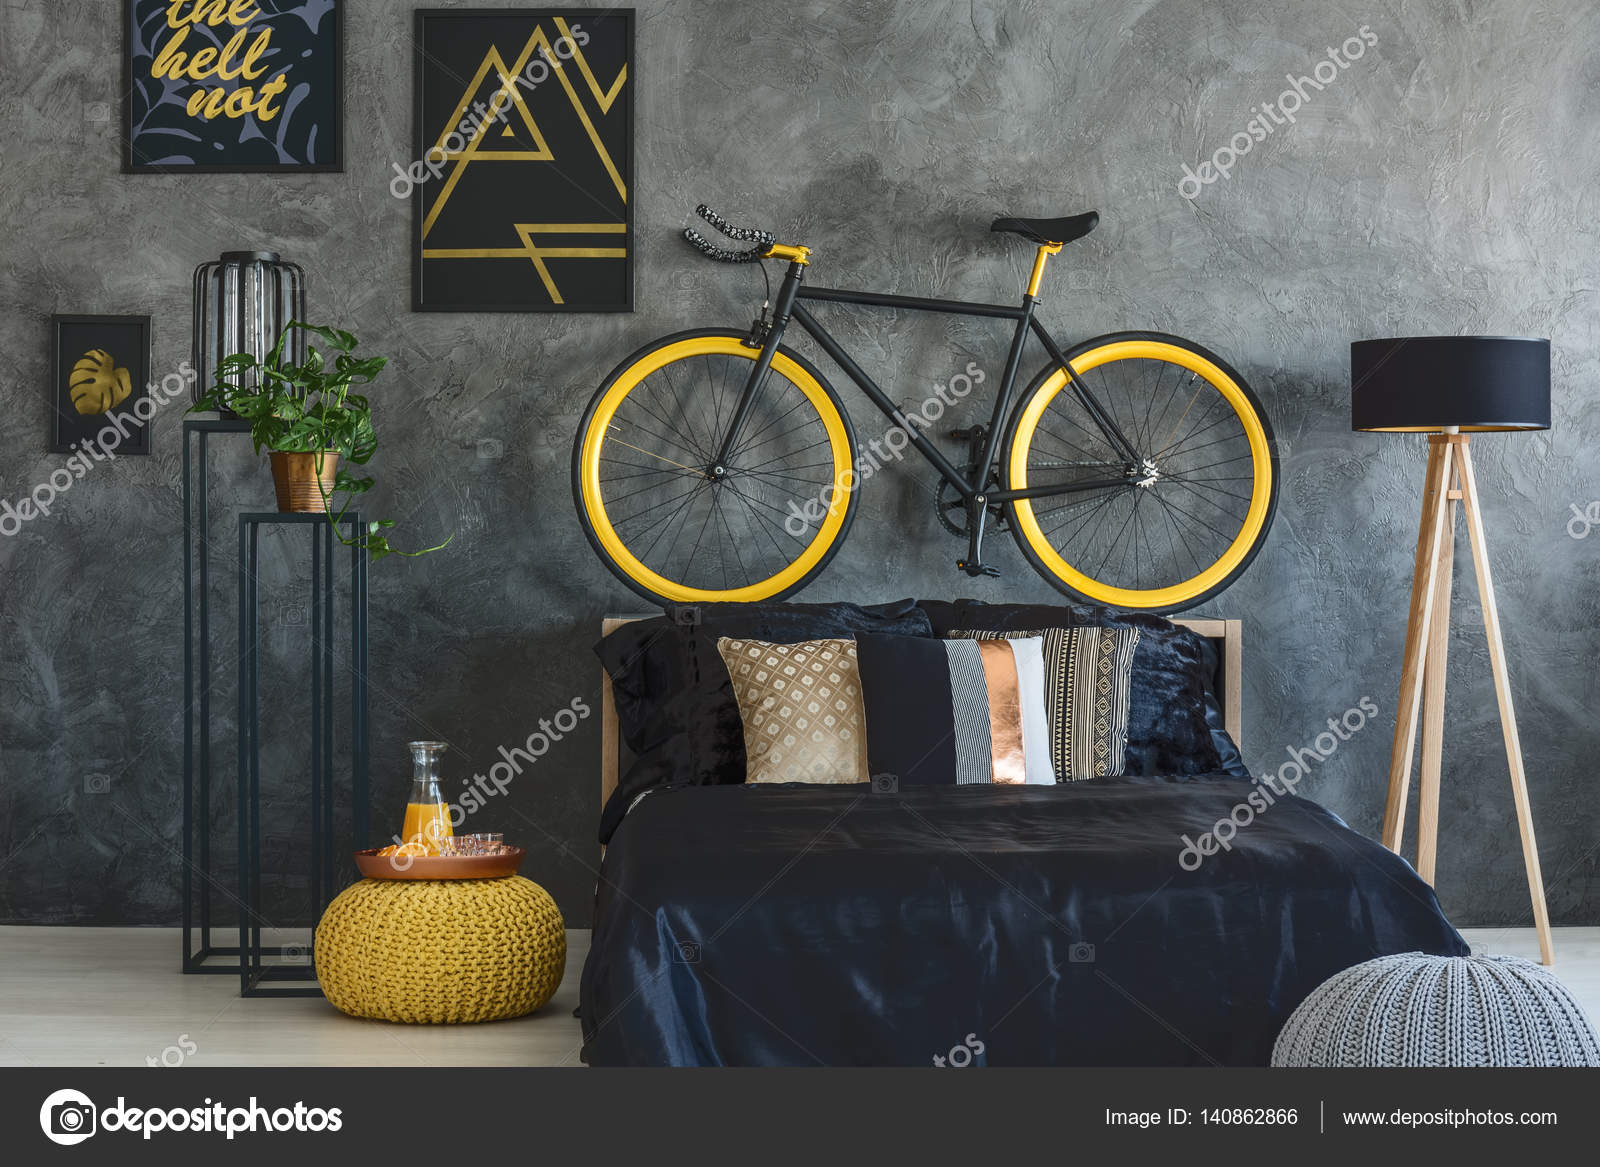 Trendy Bedroom With Wall Posters U2014 Stock Photo #140862866